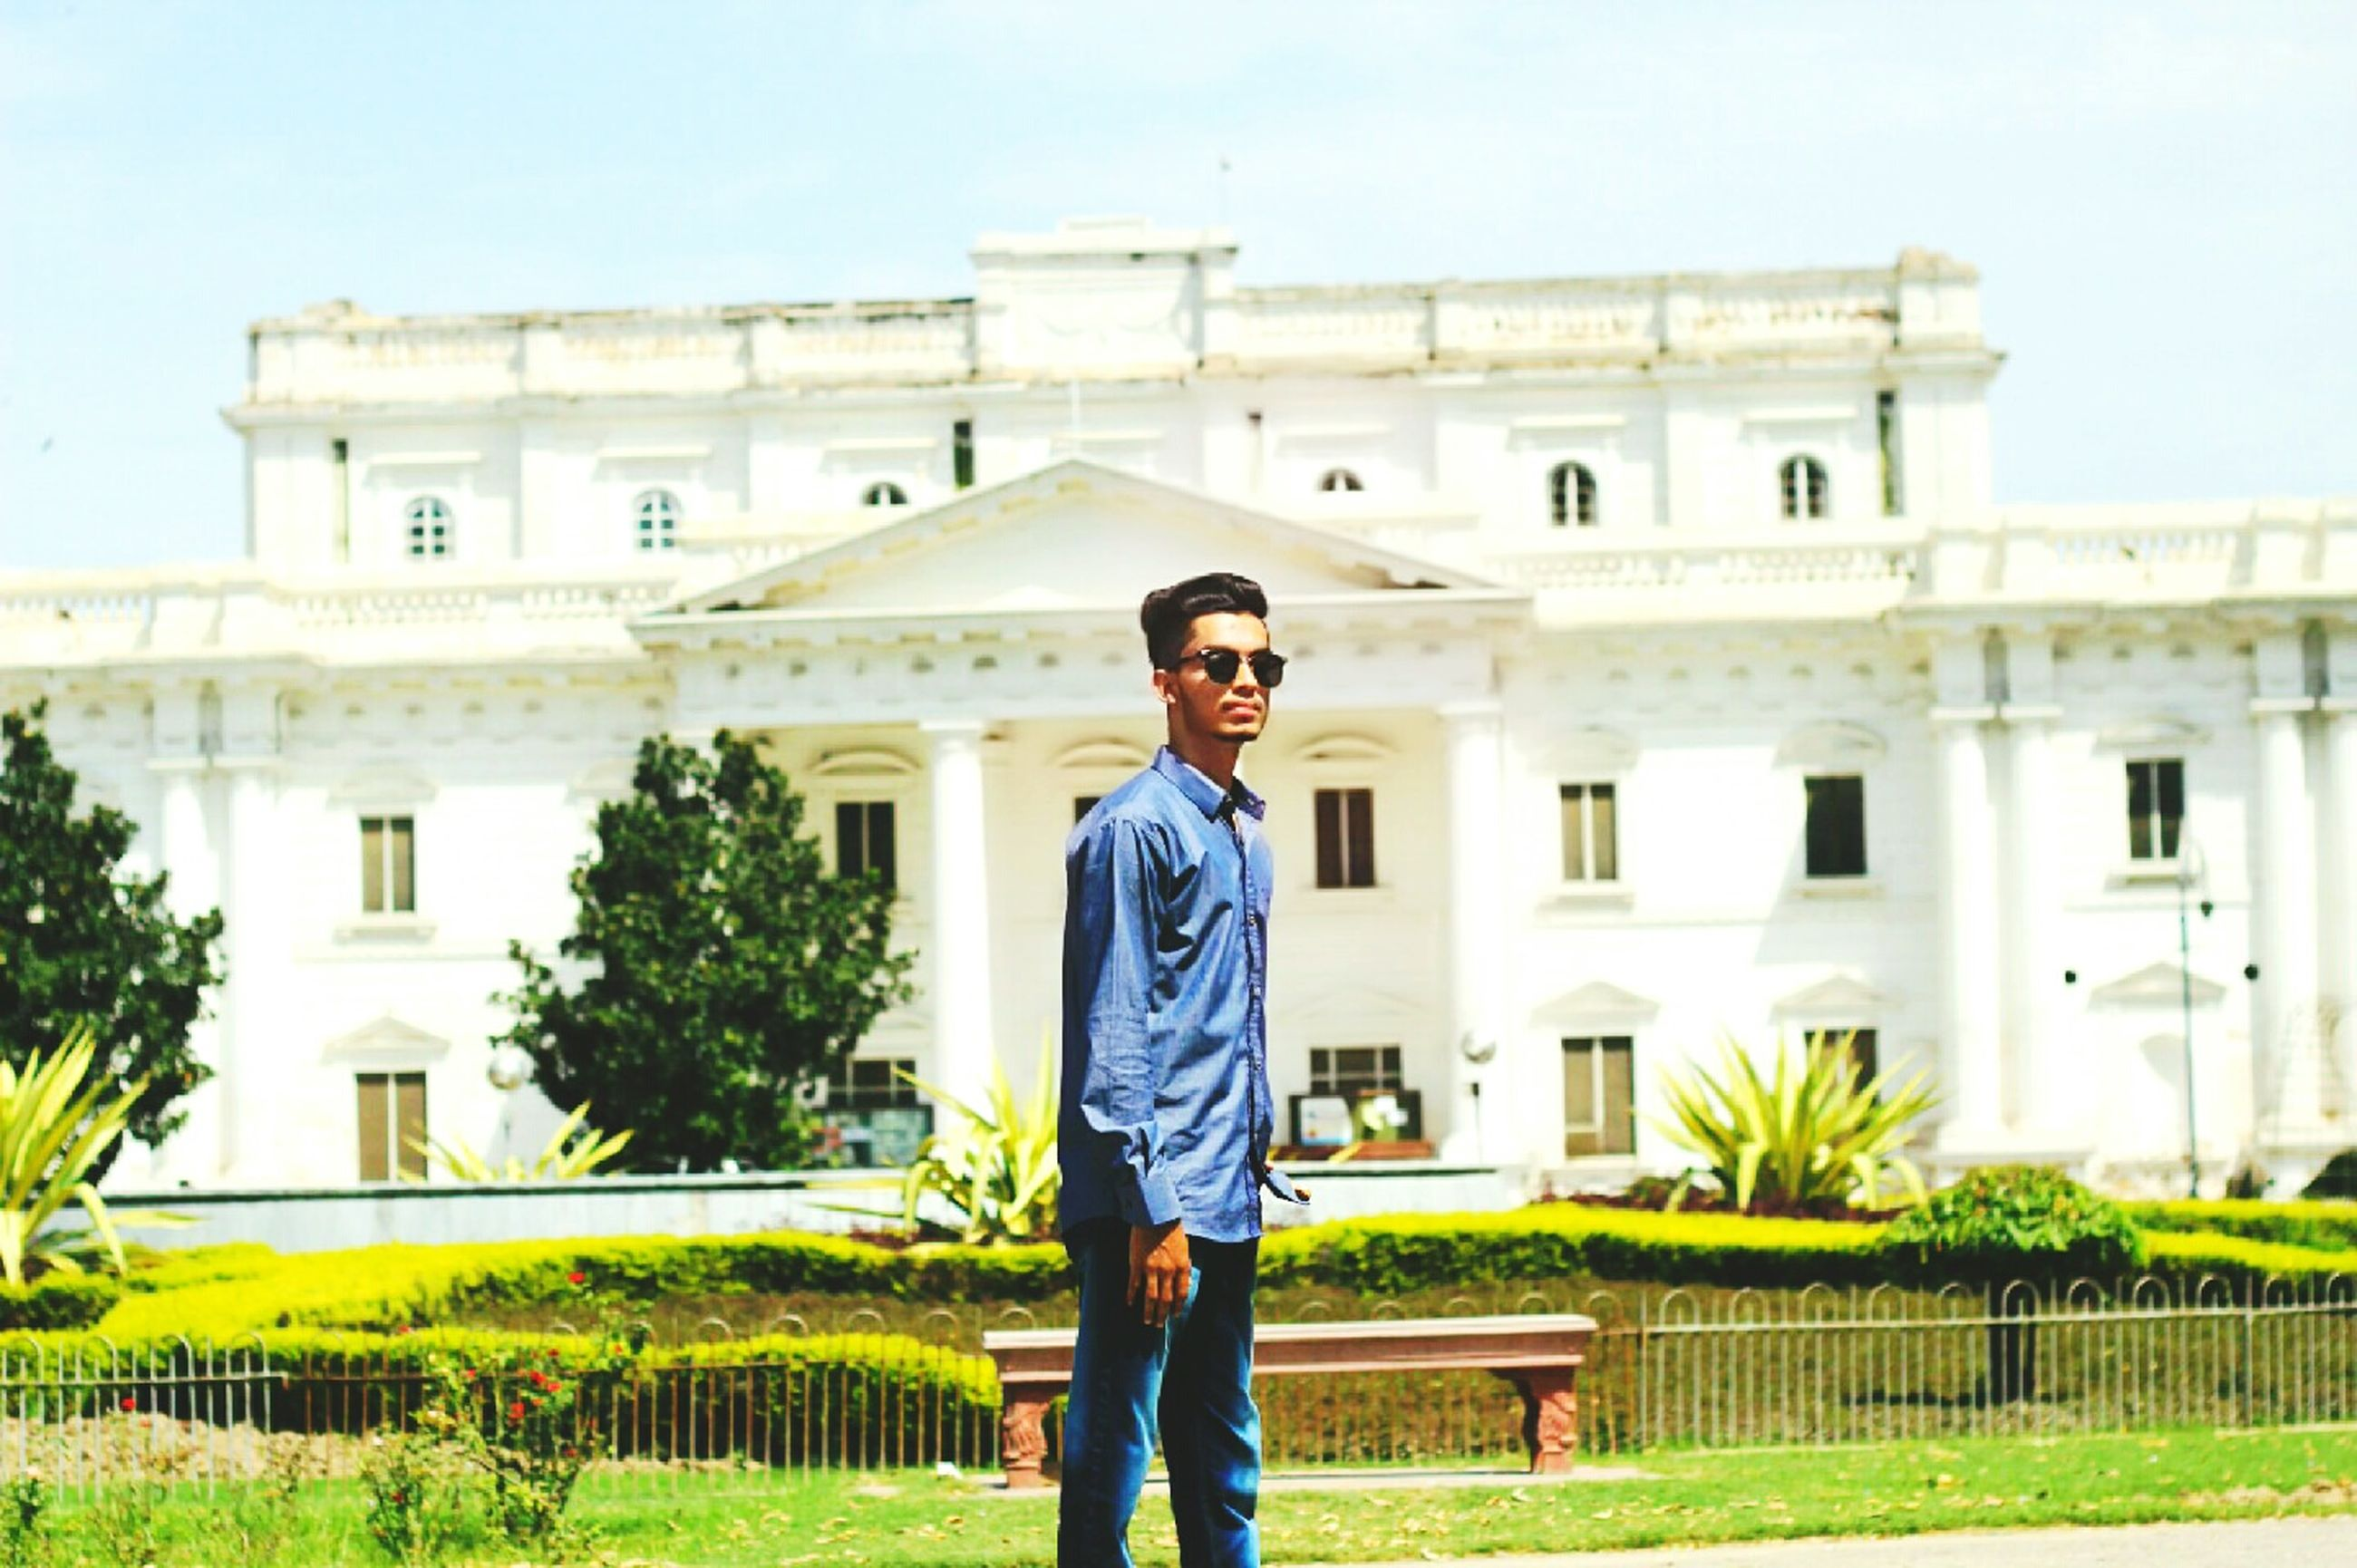 architecture, building exterior, built structure, lifestyles, person, leisure activity, young adult, standing, casual clothing, smiling, sunglasses, front view, residential building, happiness, residential structure, portrait, three quarter length, looking at camera, young women, full length, hands in pockets, clear sky, arch, focus on foreground, in front of, weekend activities, day